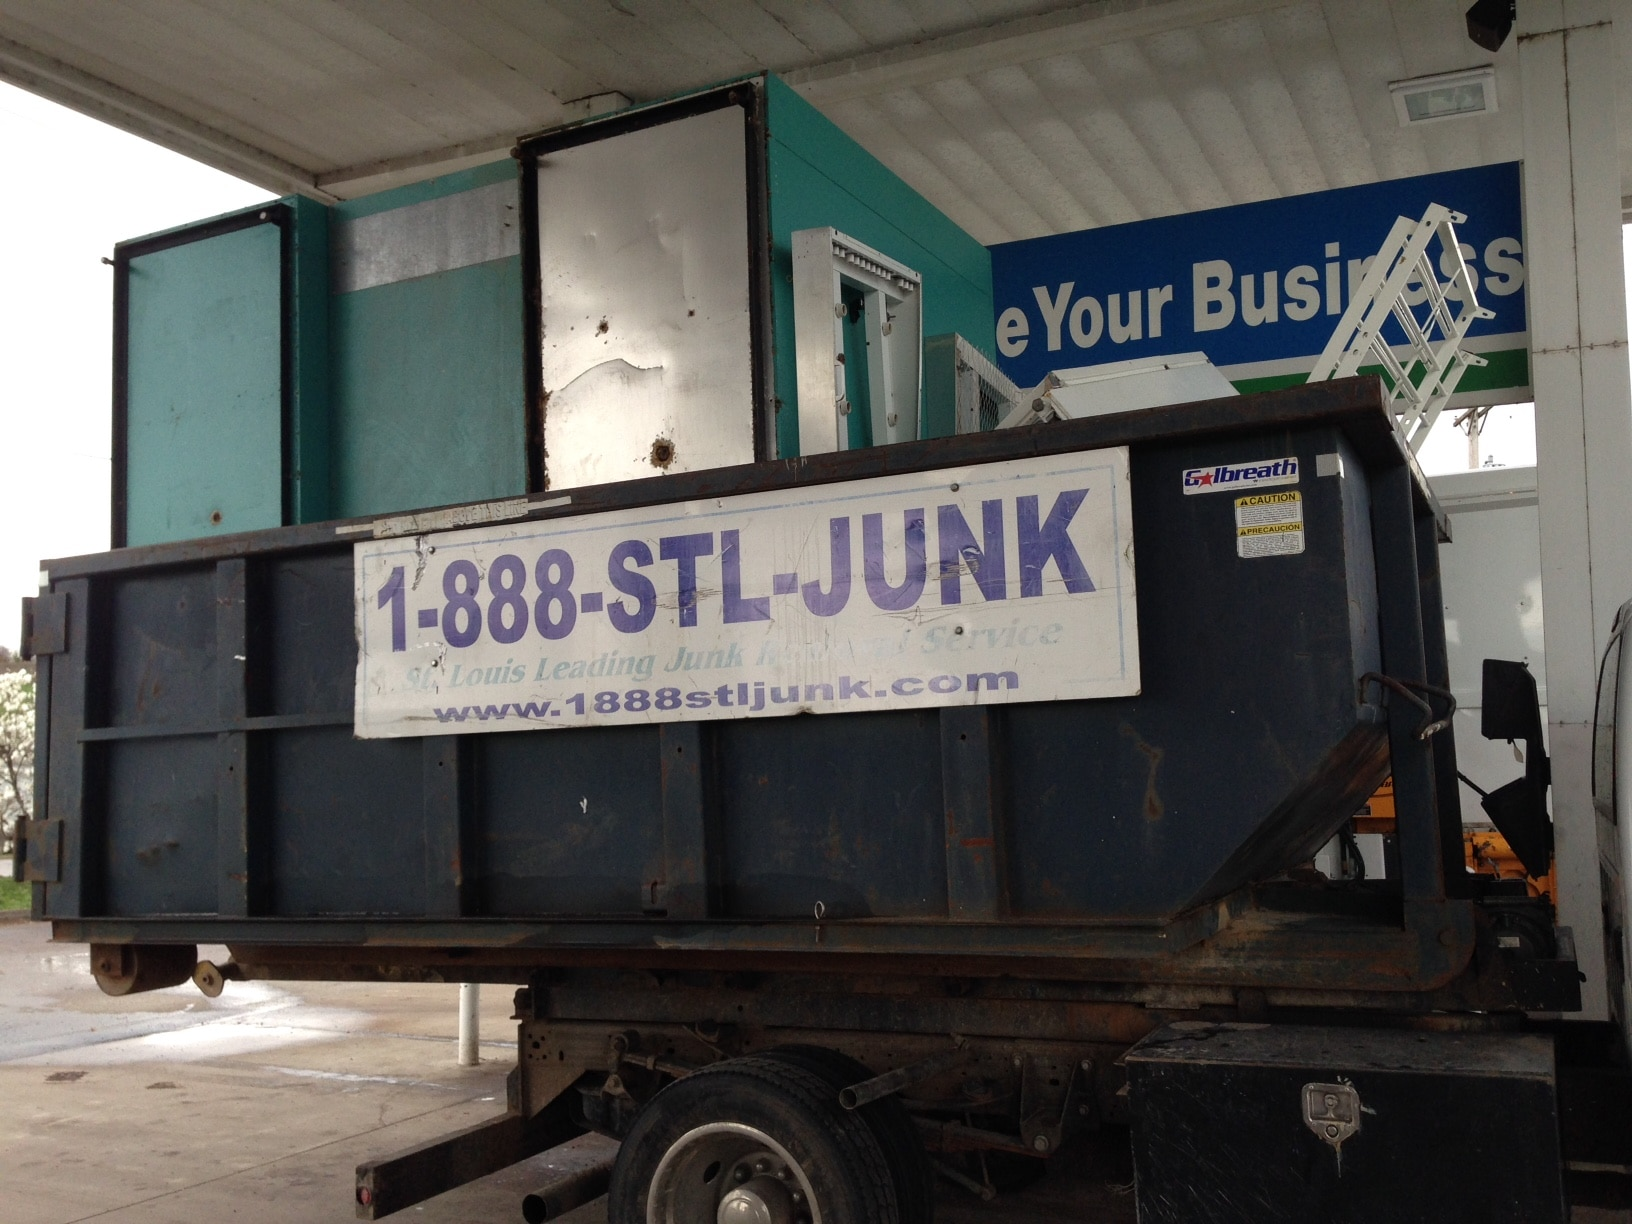 junk removal, Home